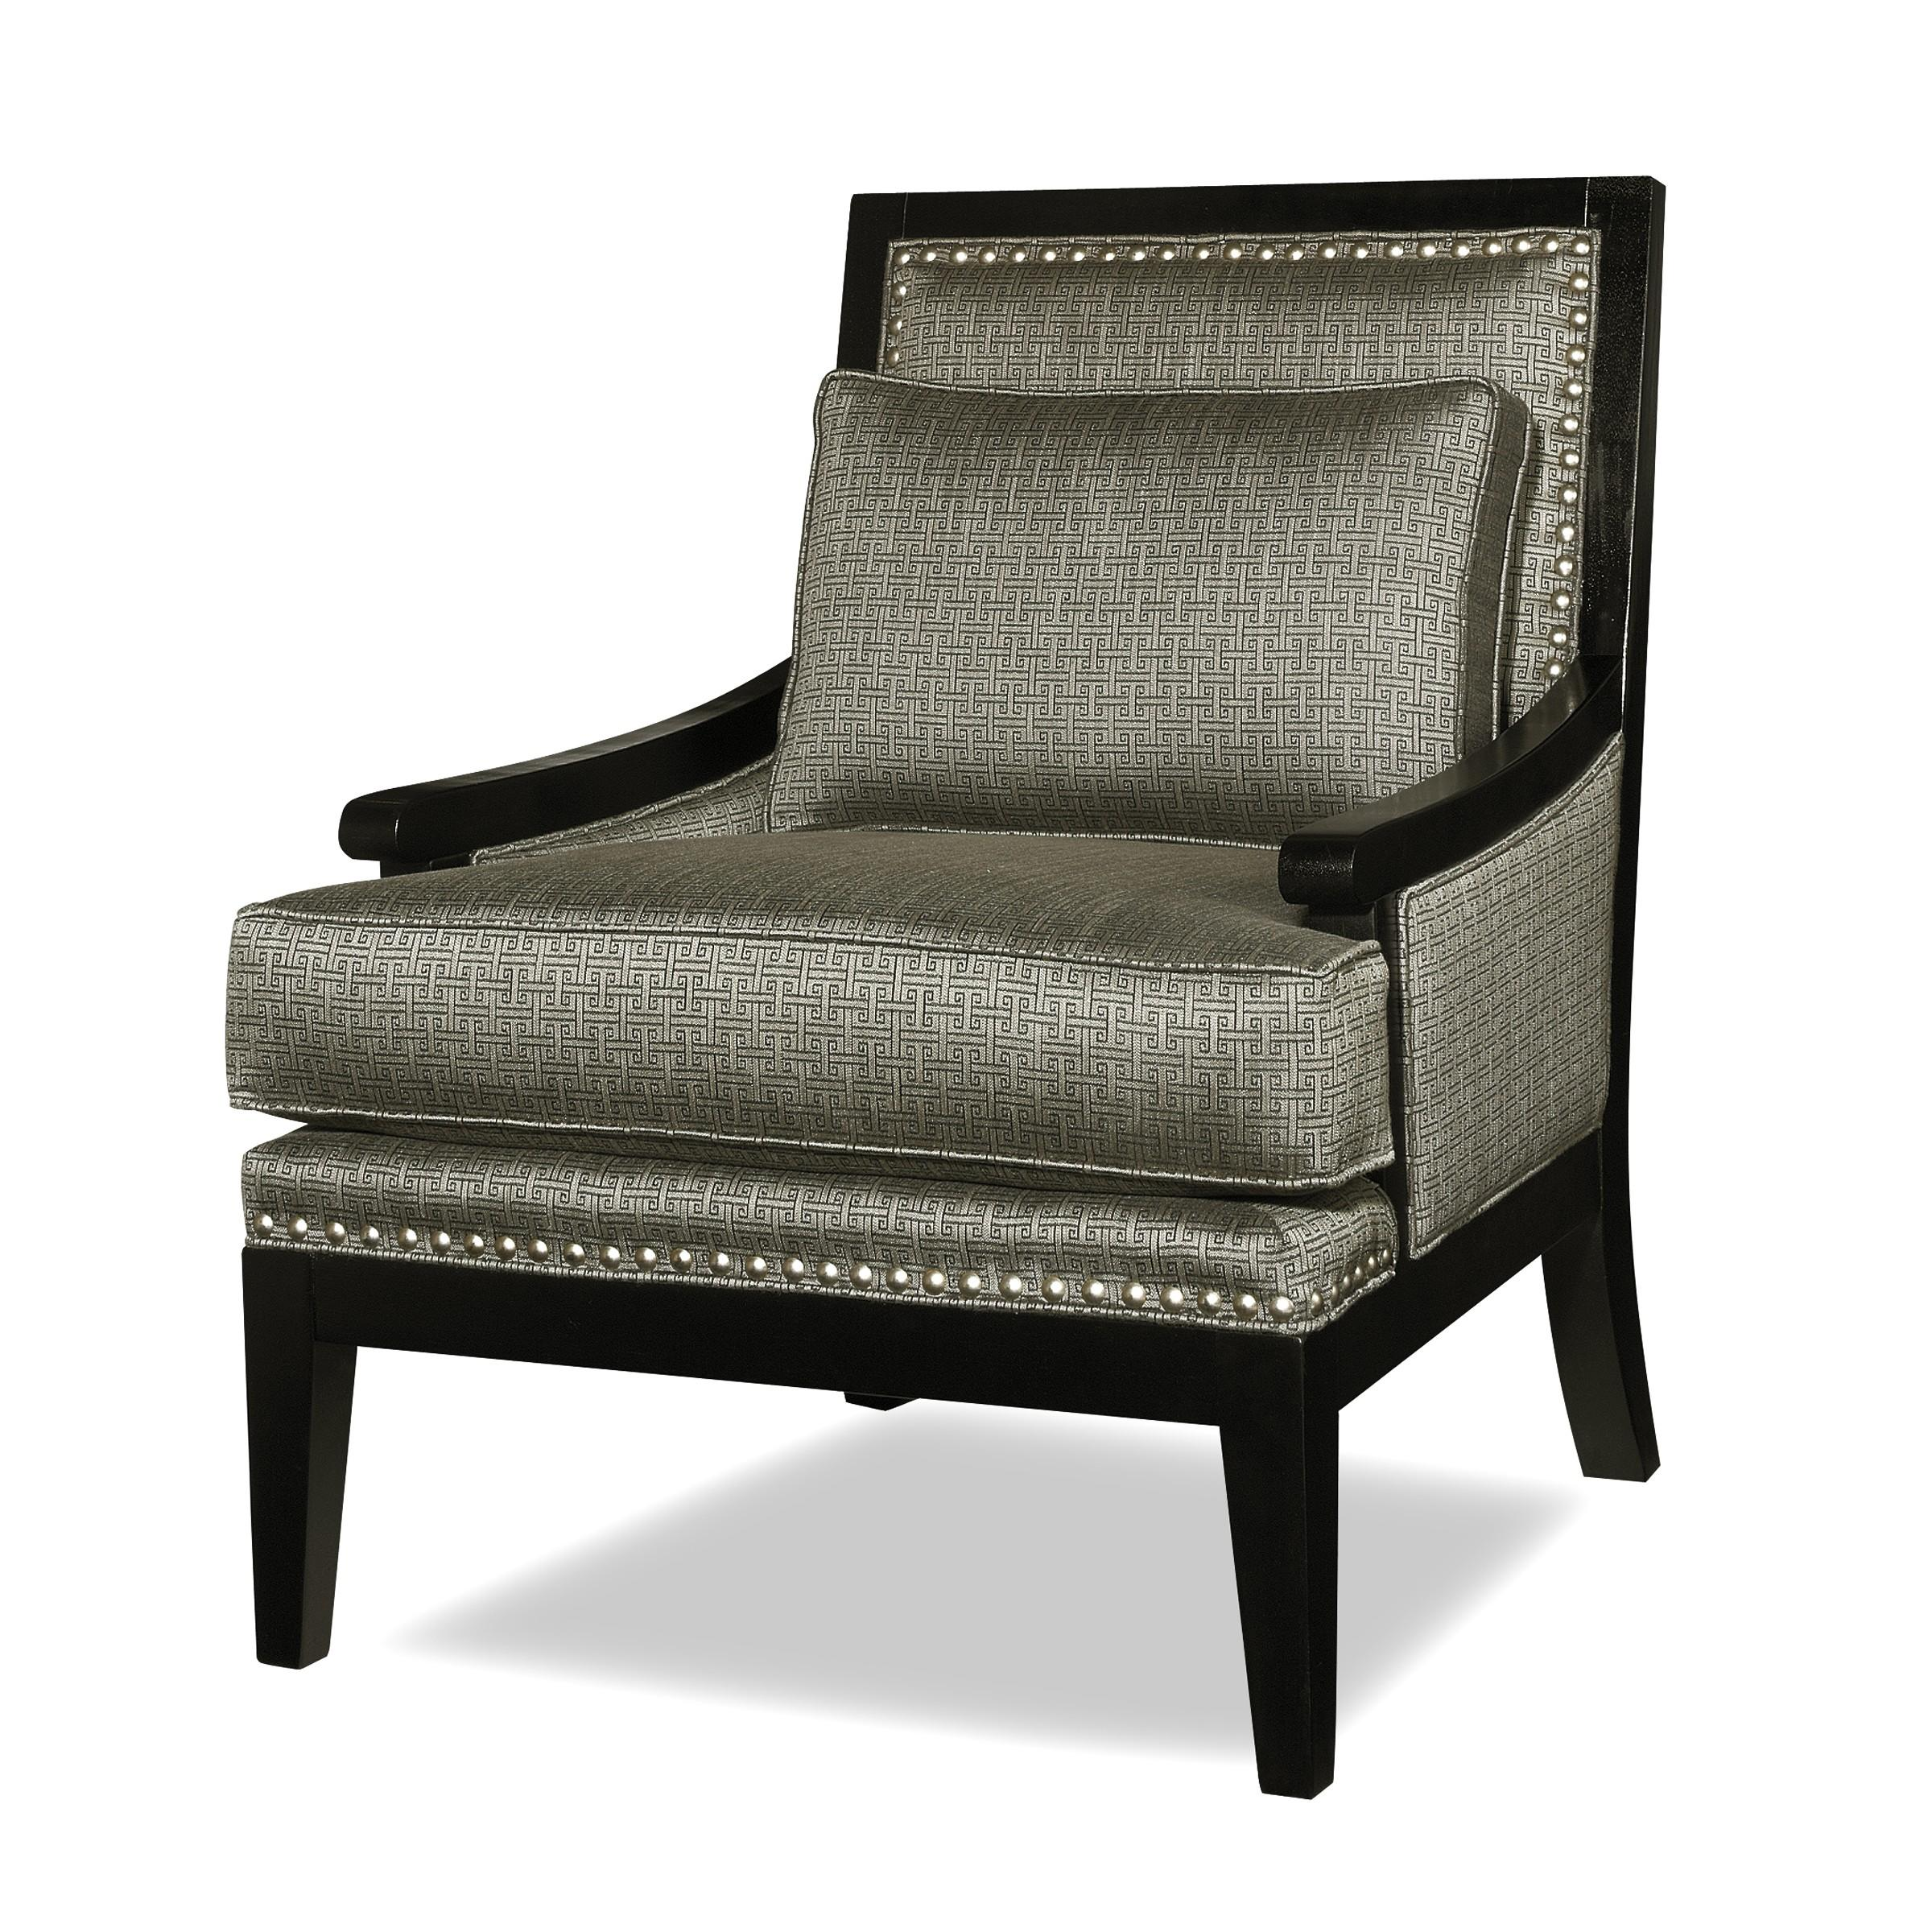 Gorgeous Accent Chair For Home Furniture Ideas With Accent Chairs With Arms And Accent Chairs For Living Room